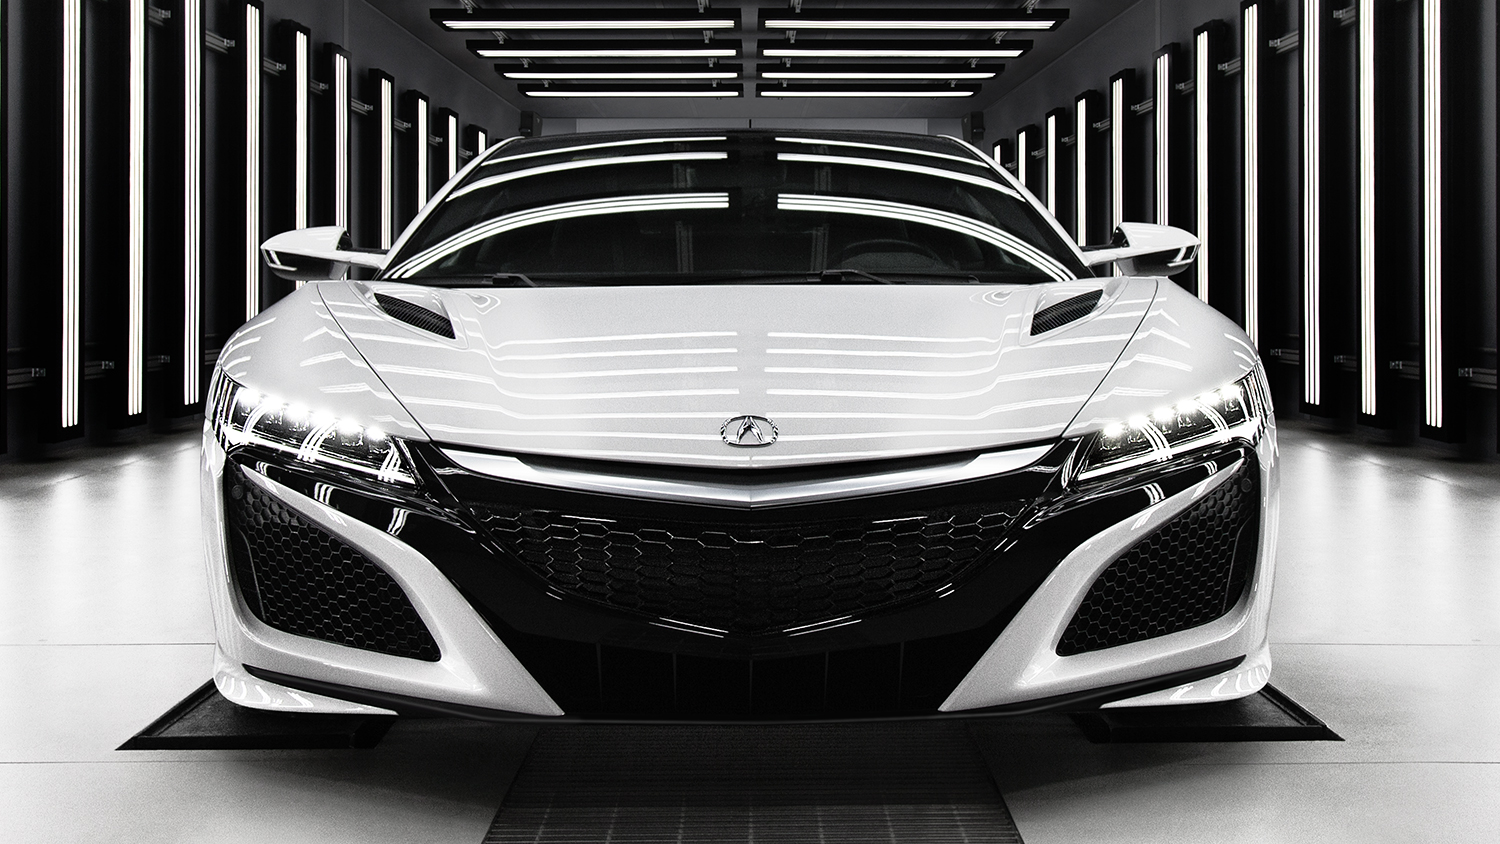 2017 Acura NSX Exterior Front Lights